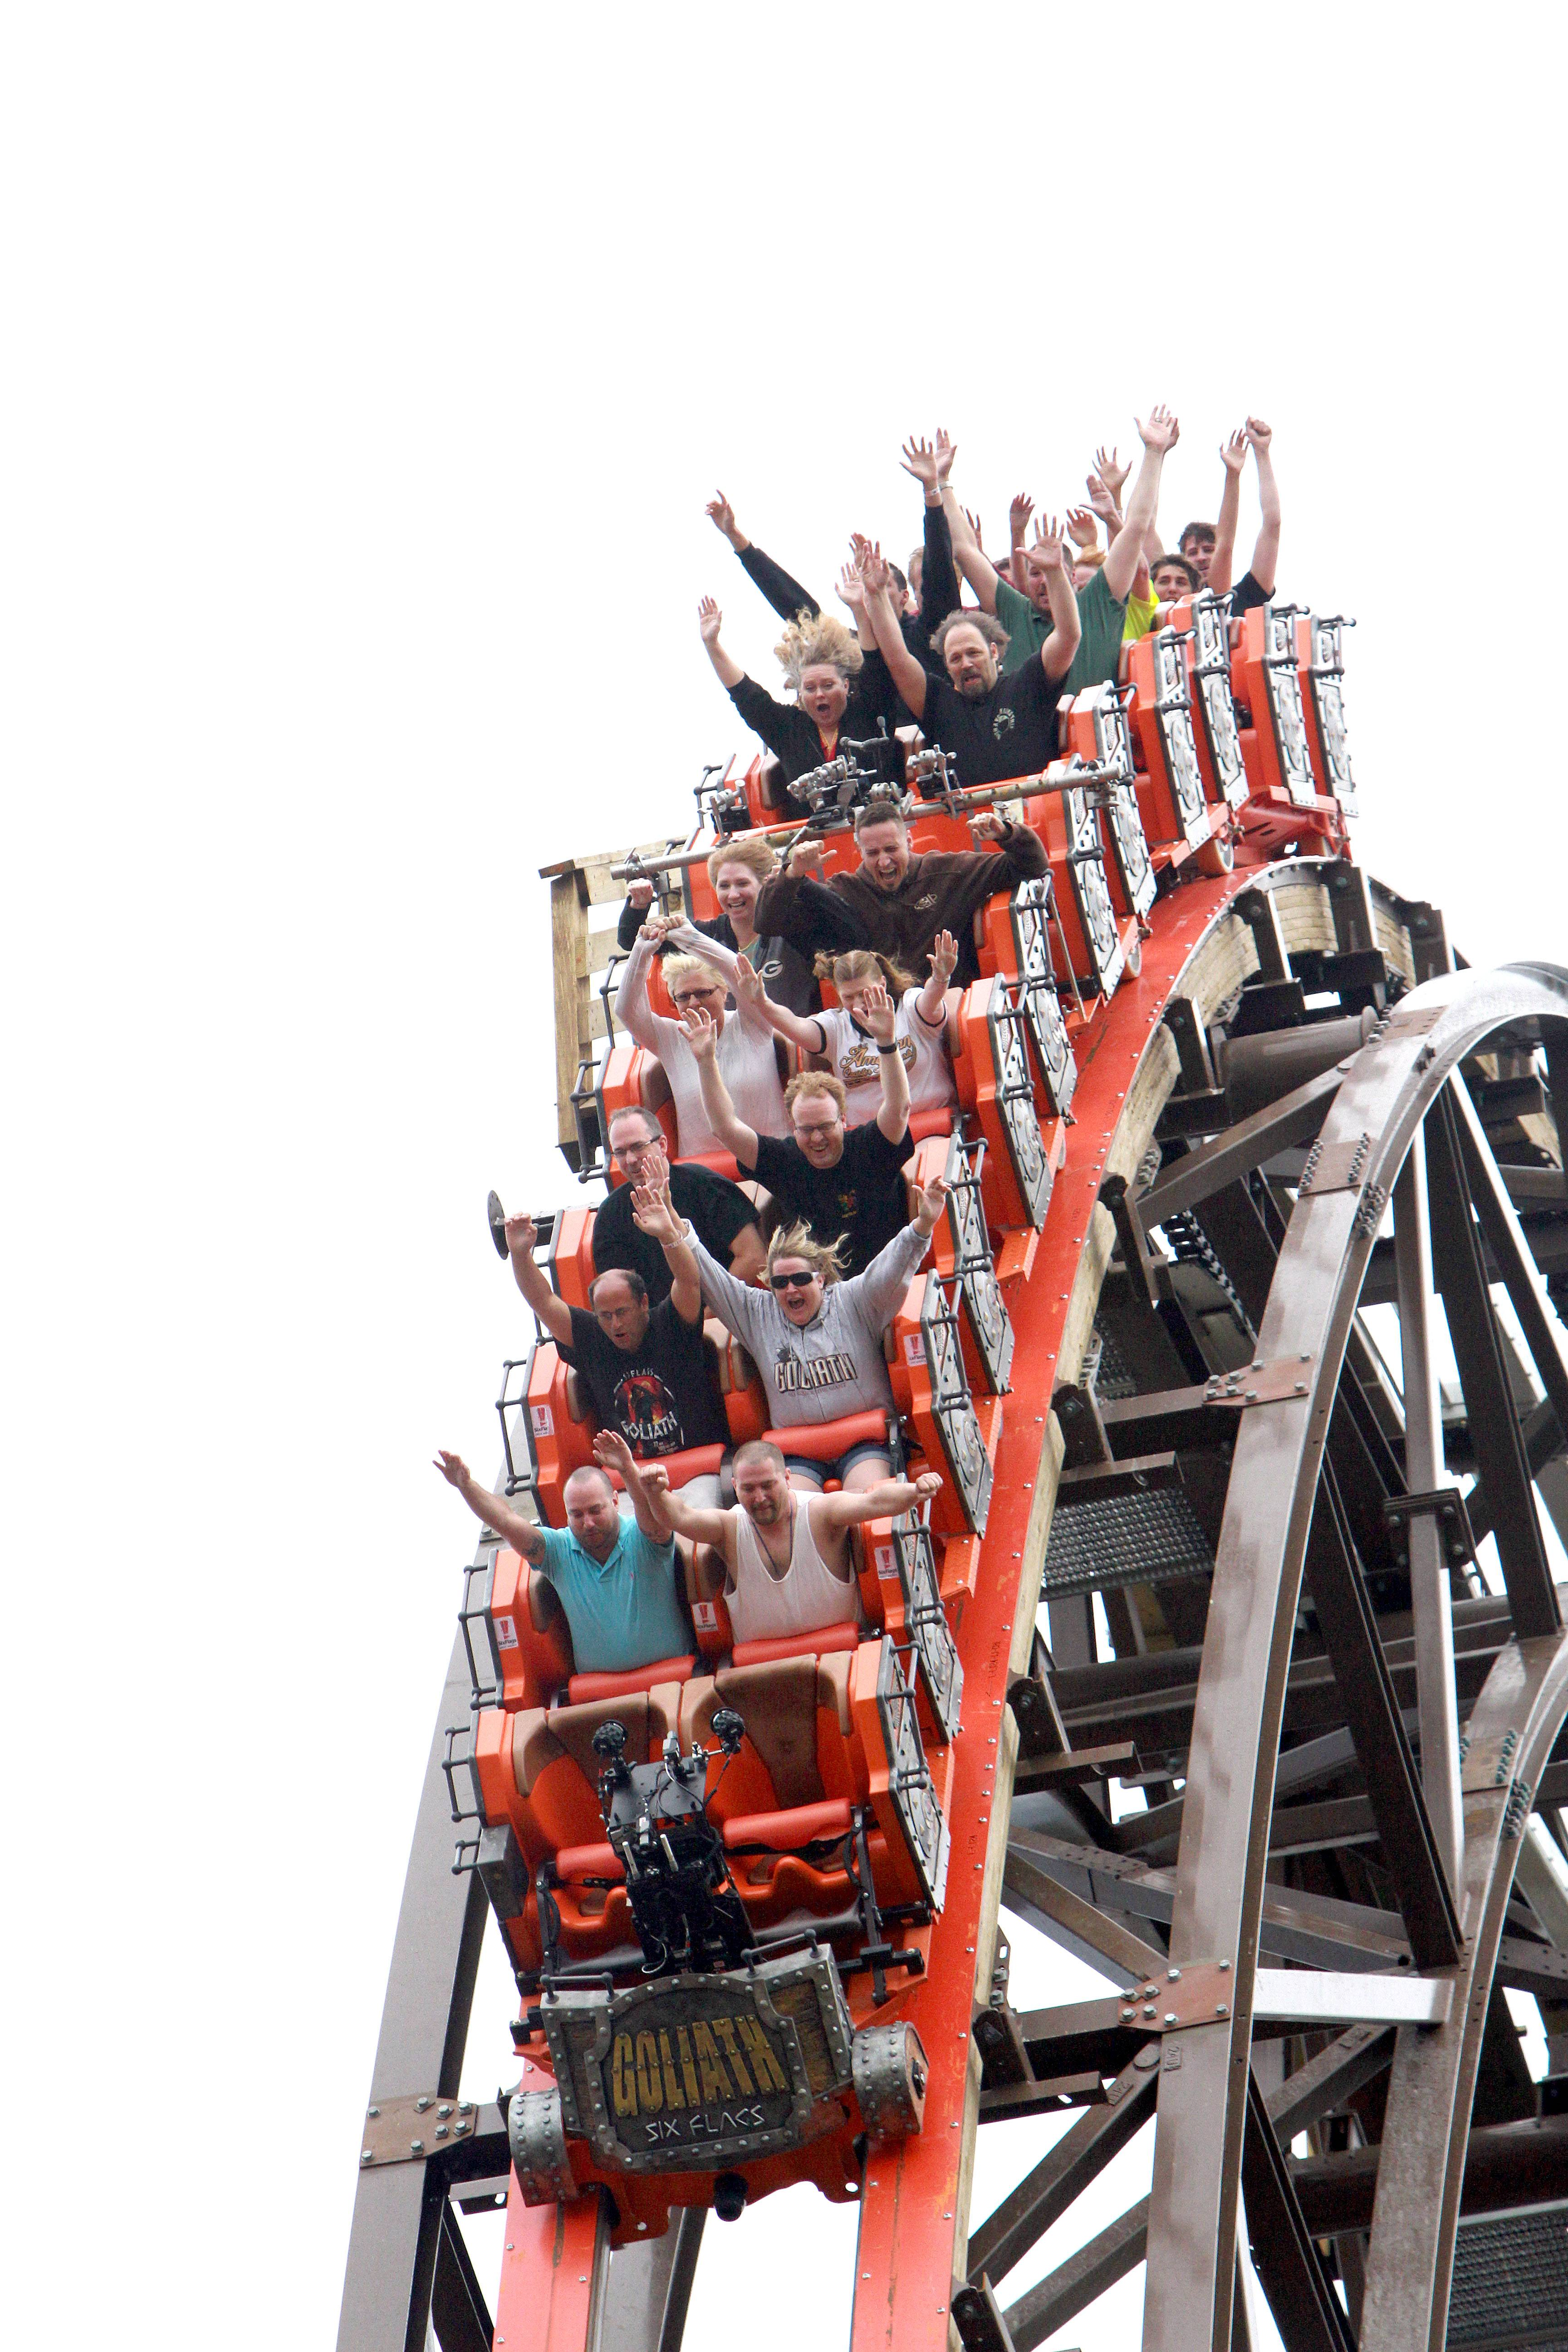 Goliath wooden roller coaster gets thumbs-up at Six Flags Great America in Gurnee